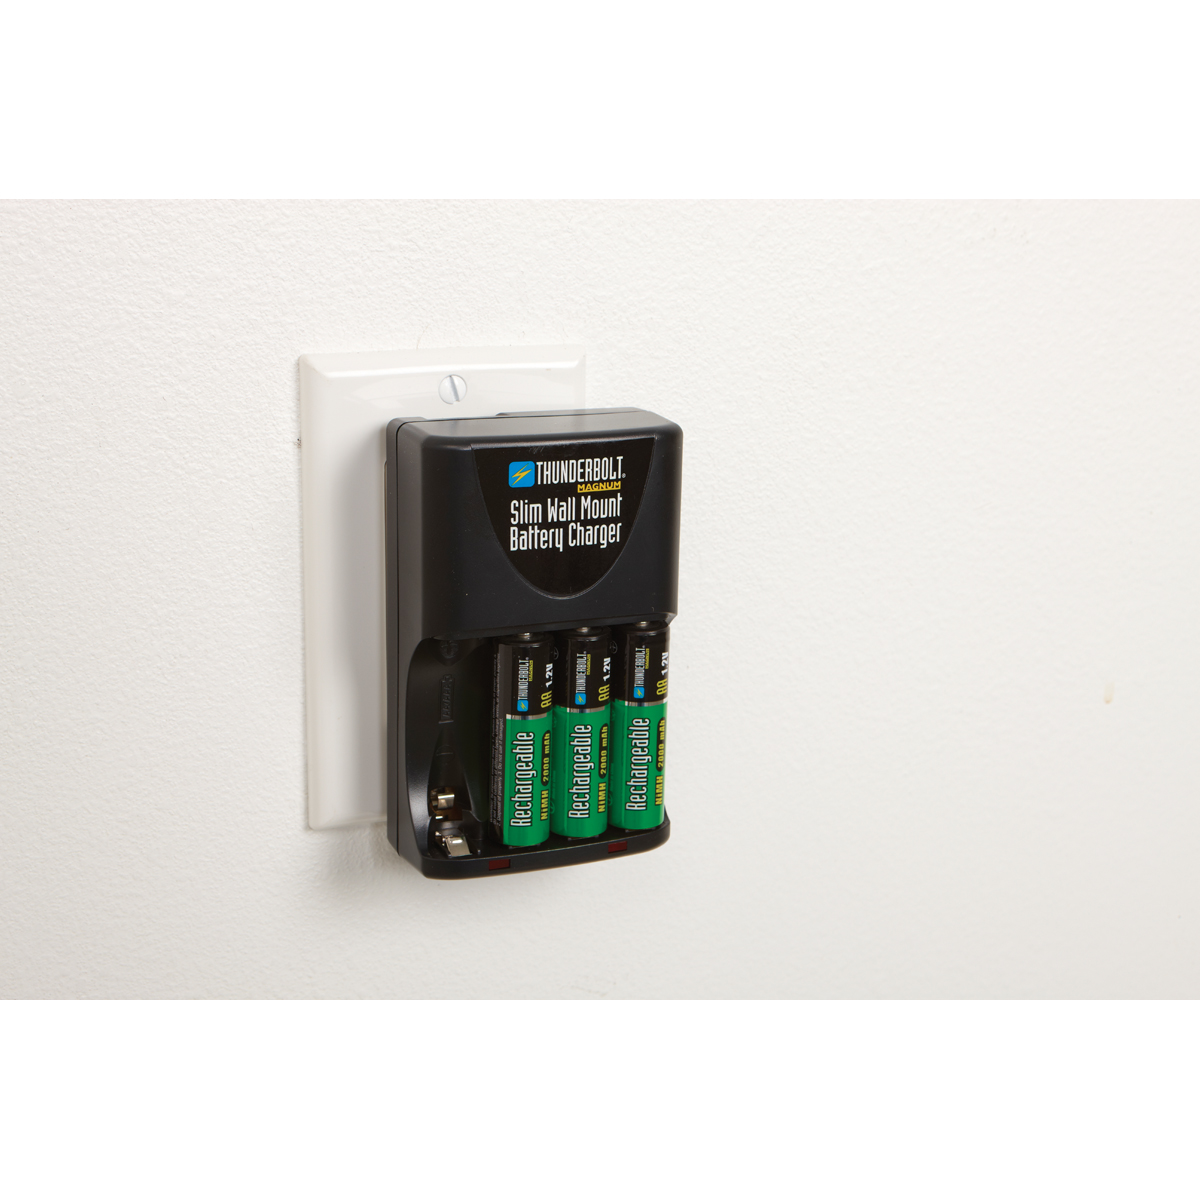 Slim Wall Mount Battery Charger